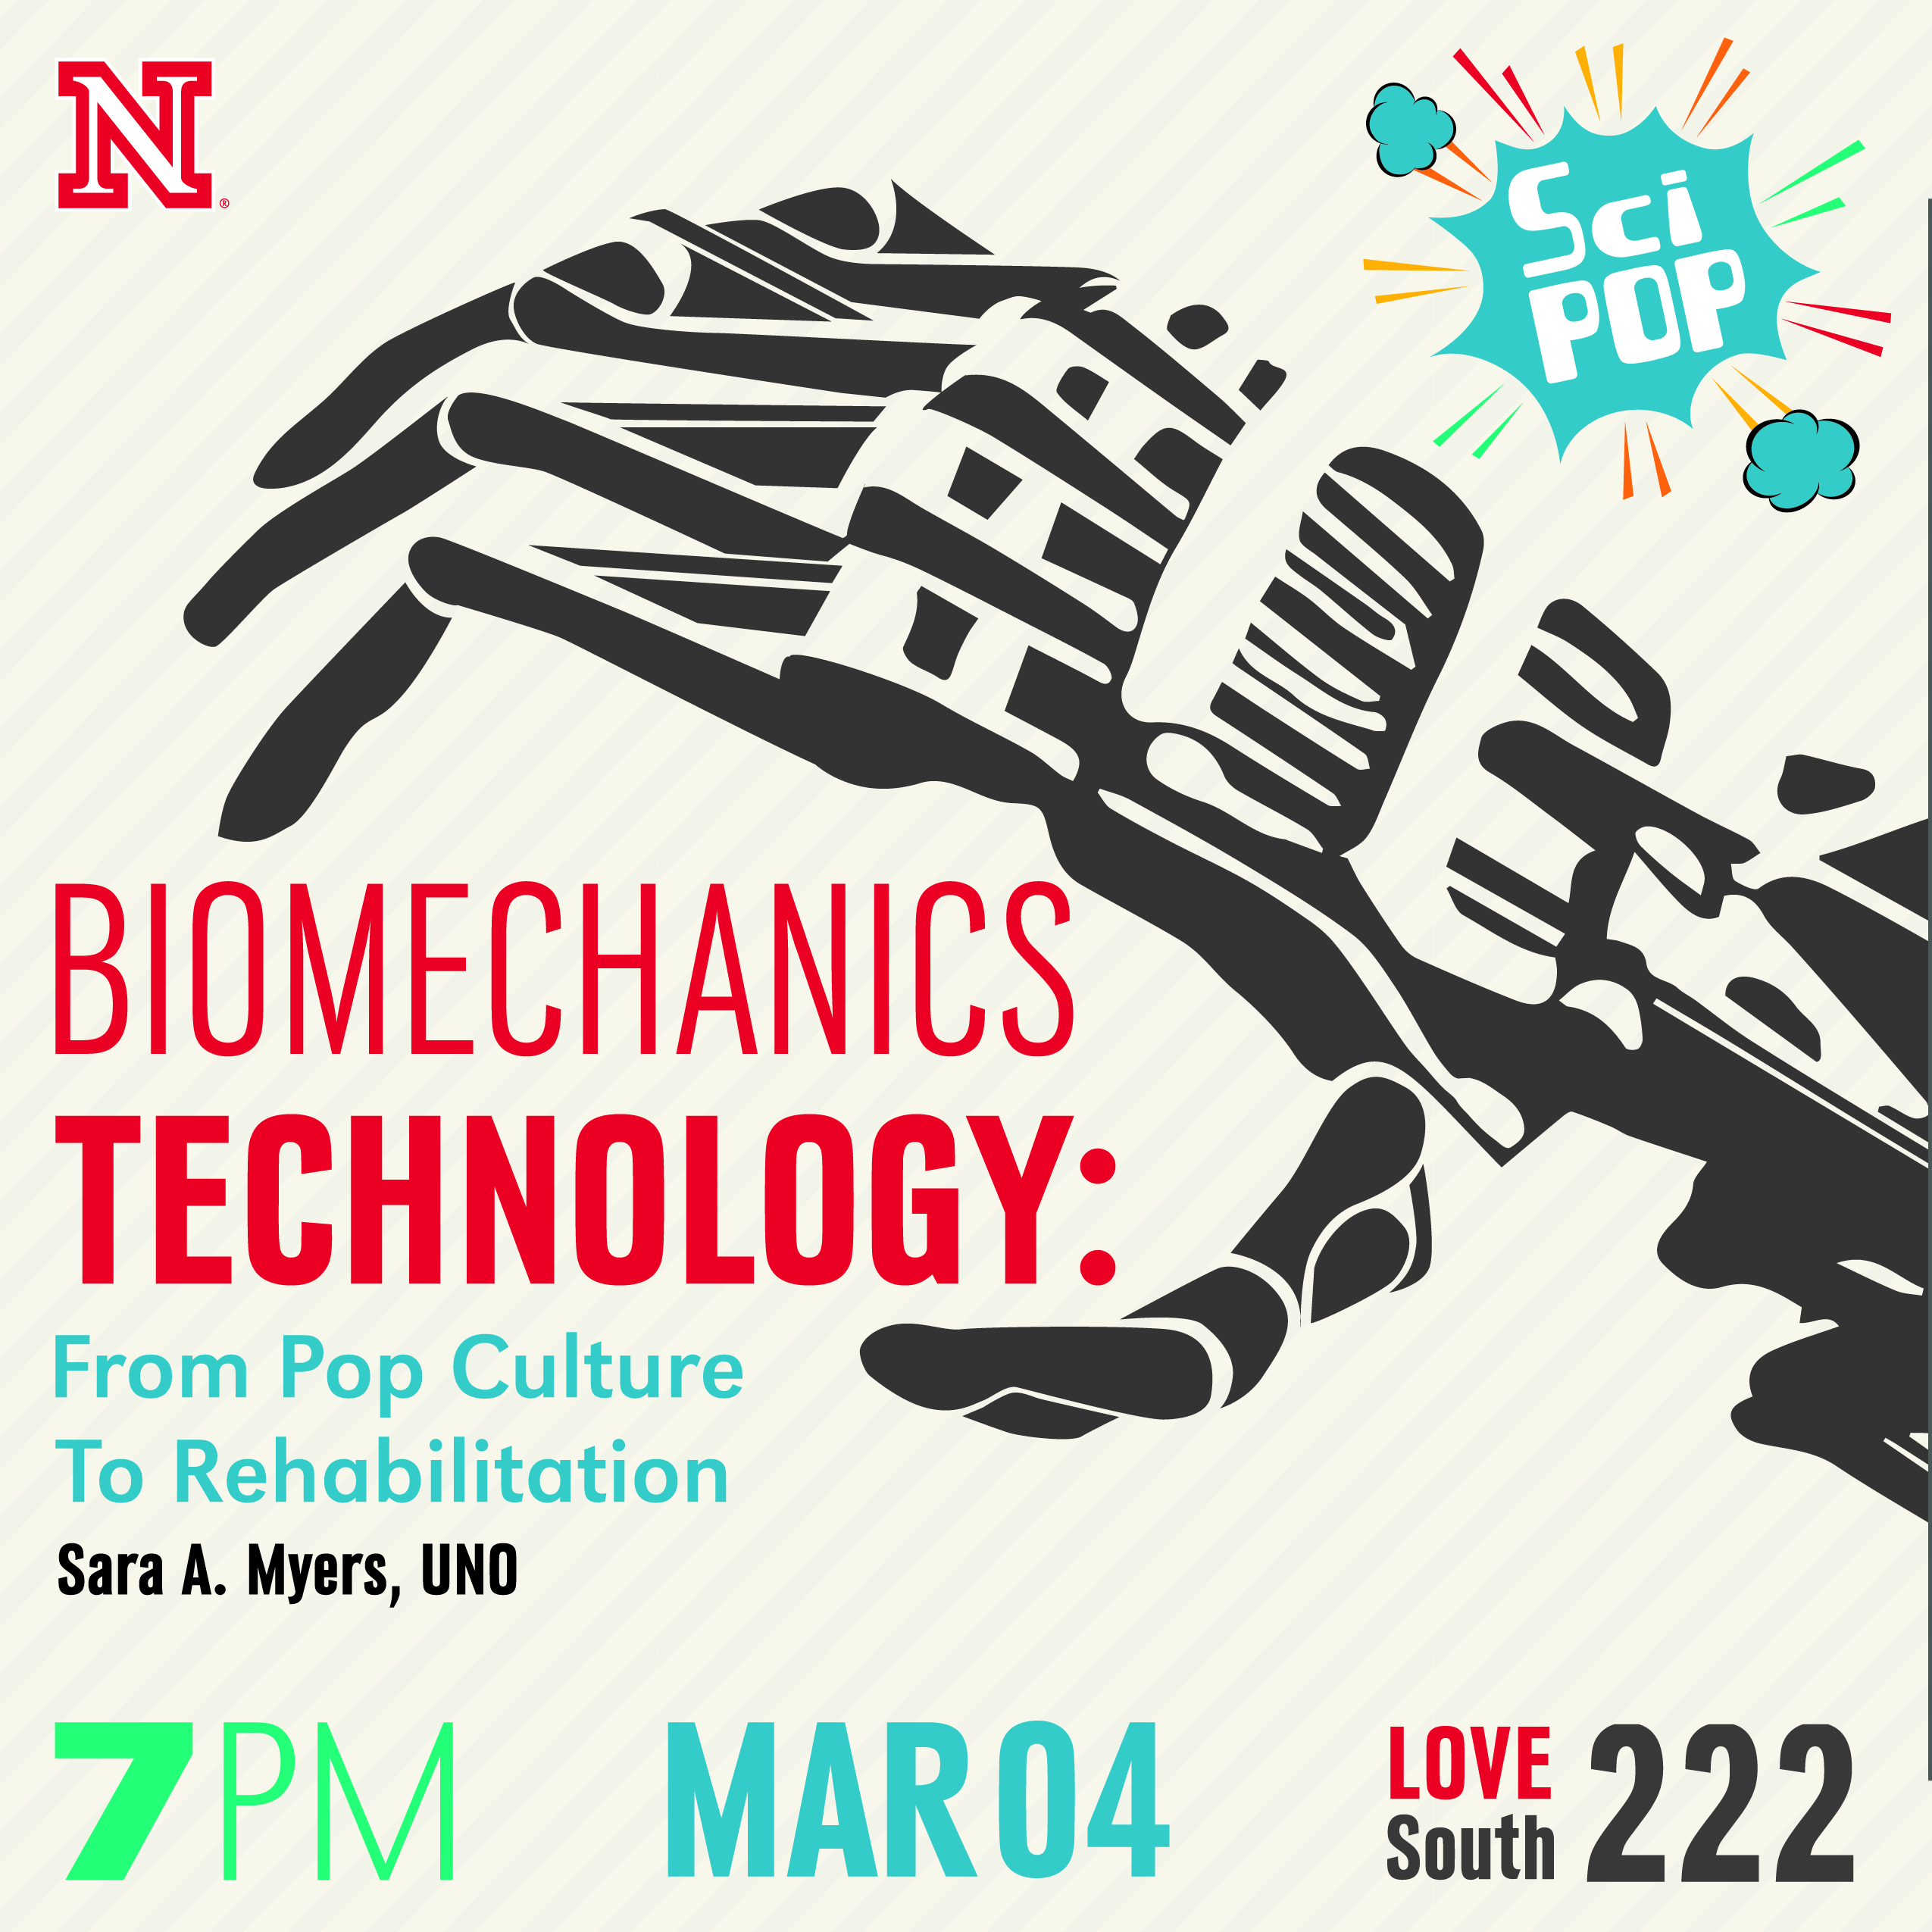 Biomechanics Technology: From Pop Culture to Rehabilitation